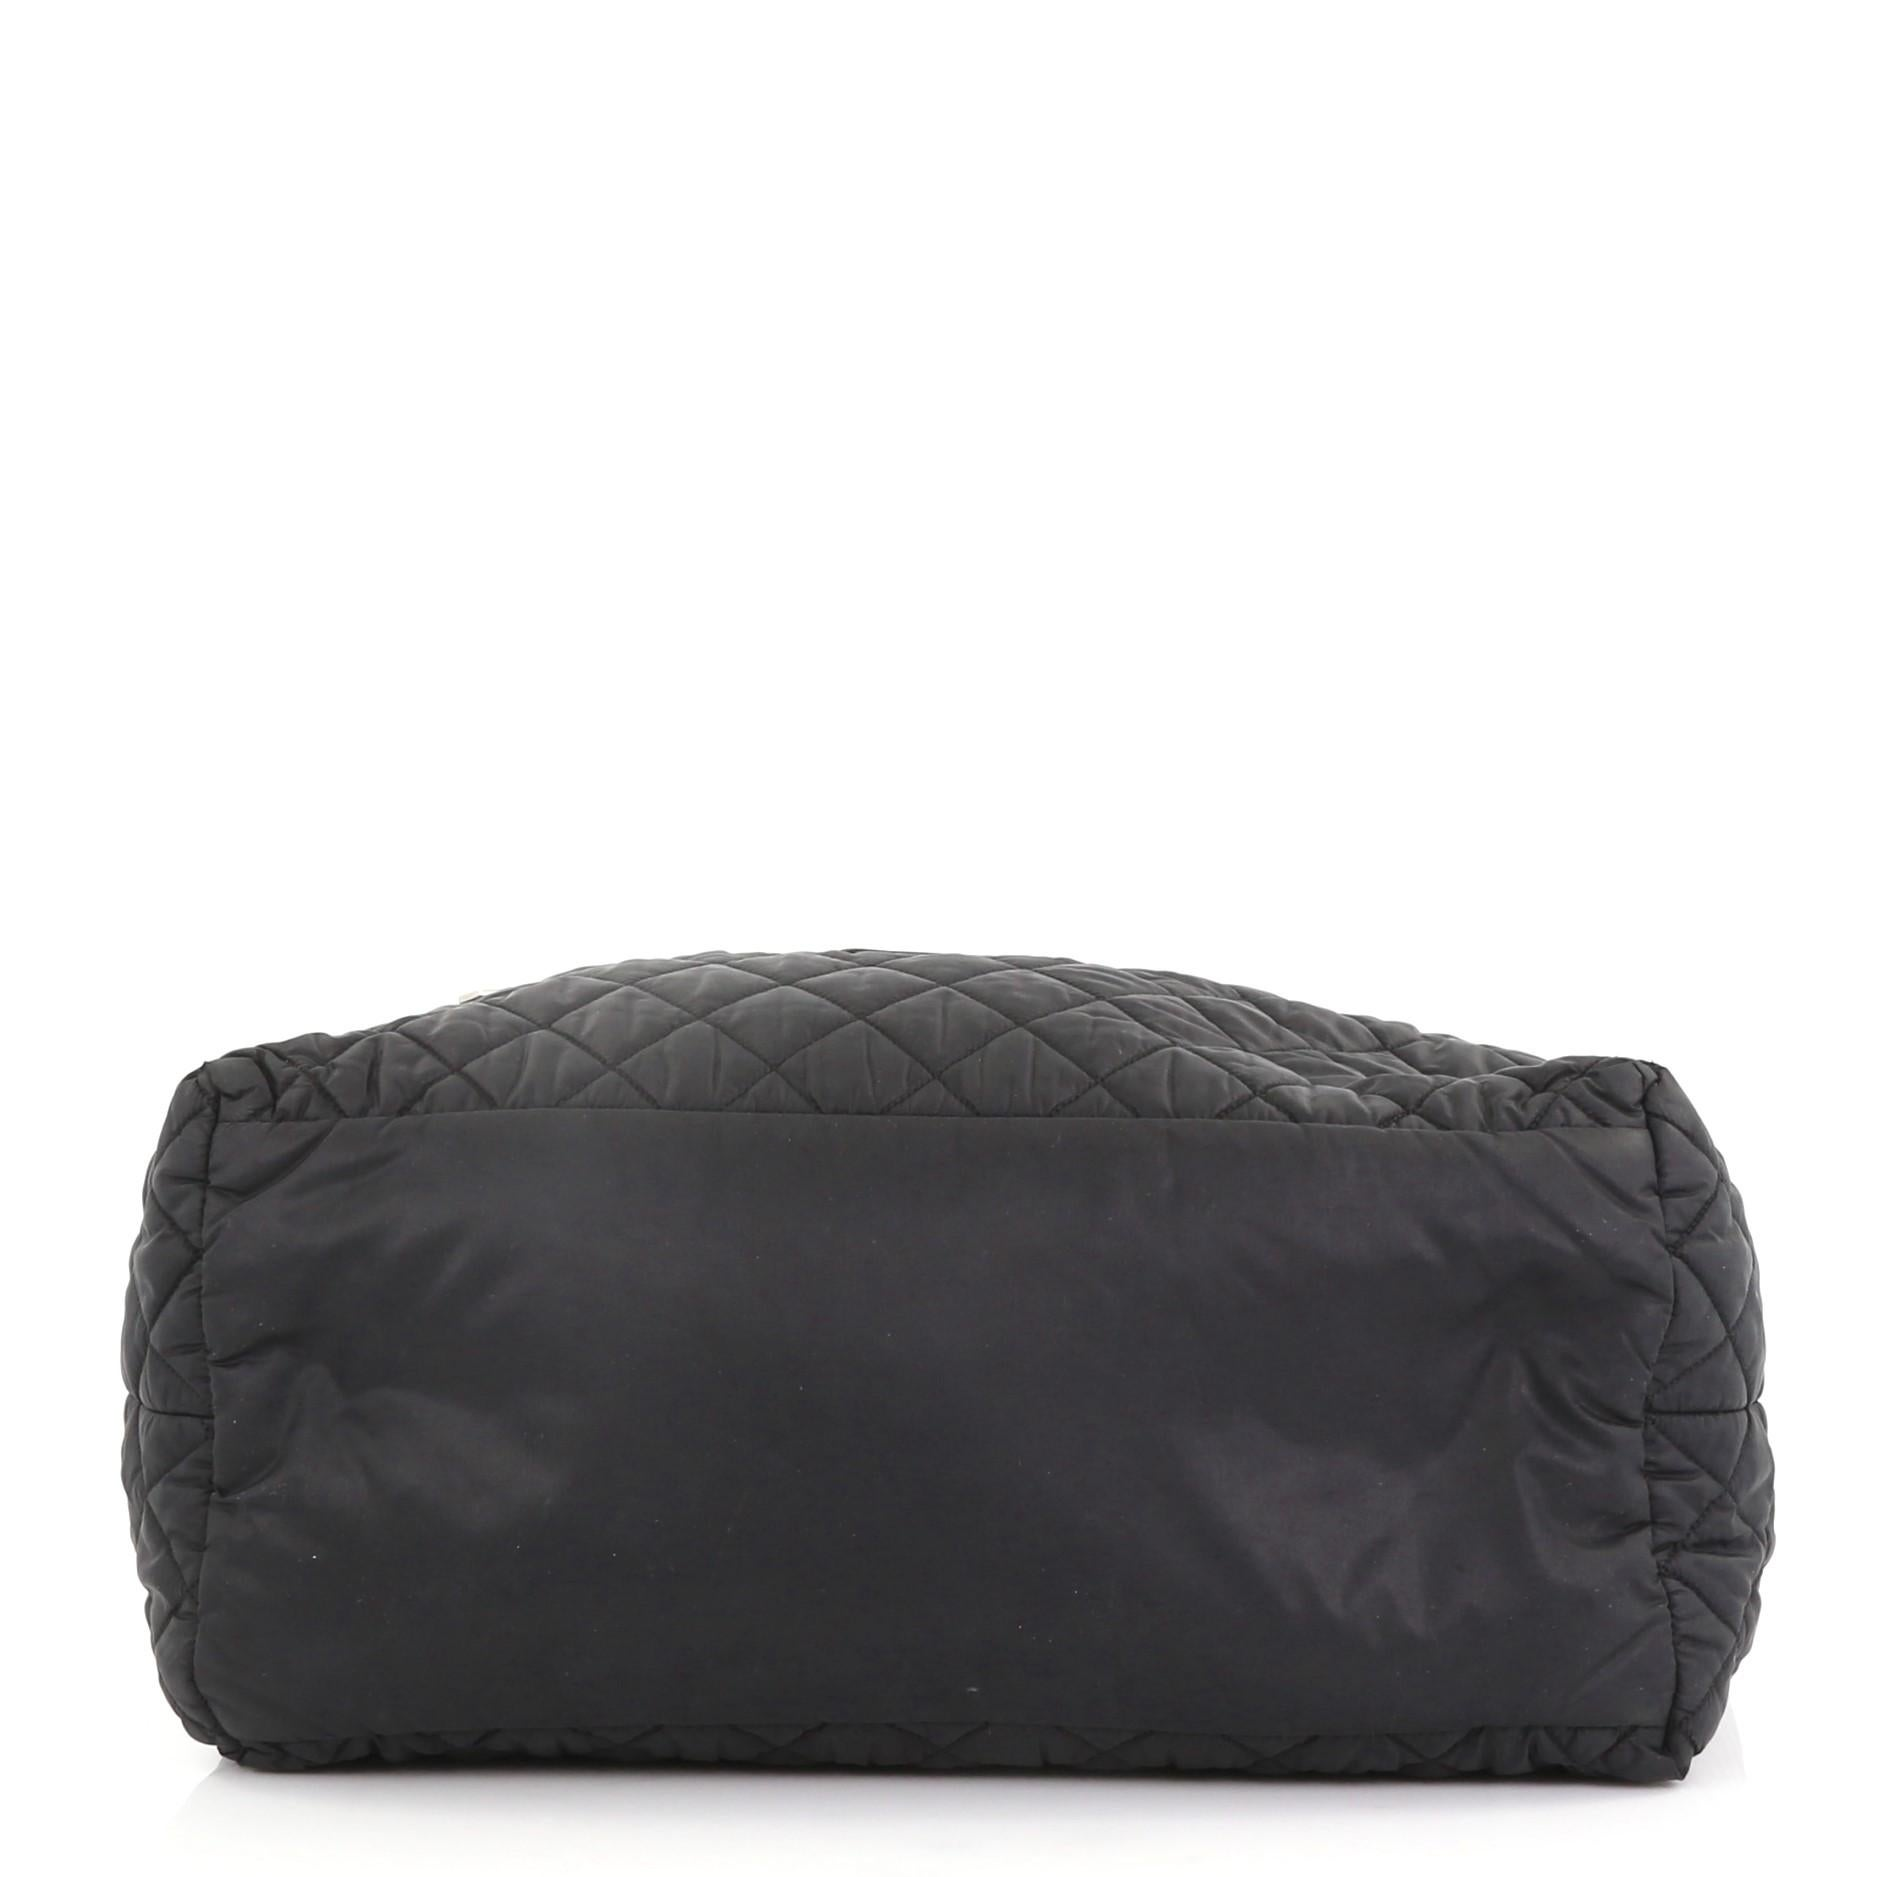 7bd4b8b03687 Chanel Coco Cocoon Zipped Tote Quilted Nylon Medium For Sale at 1stdibs